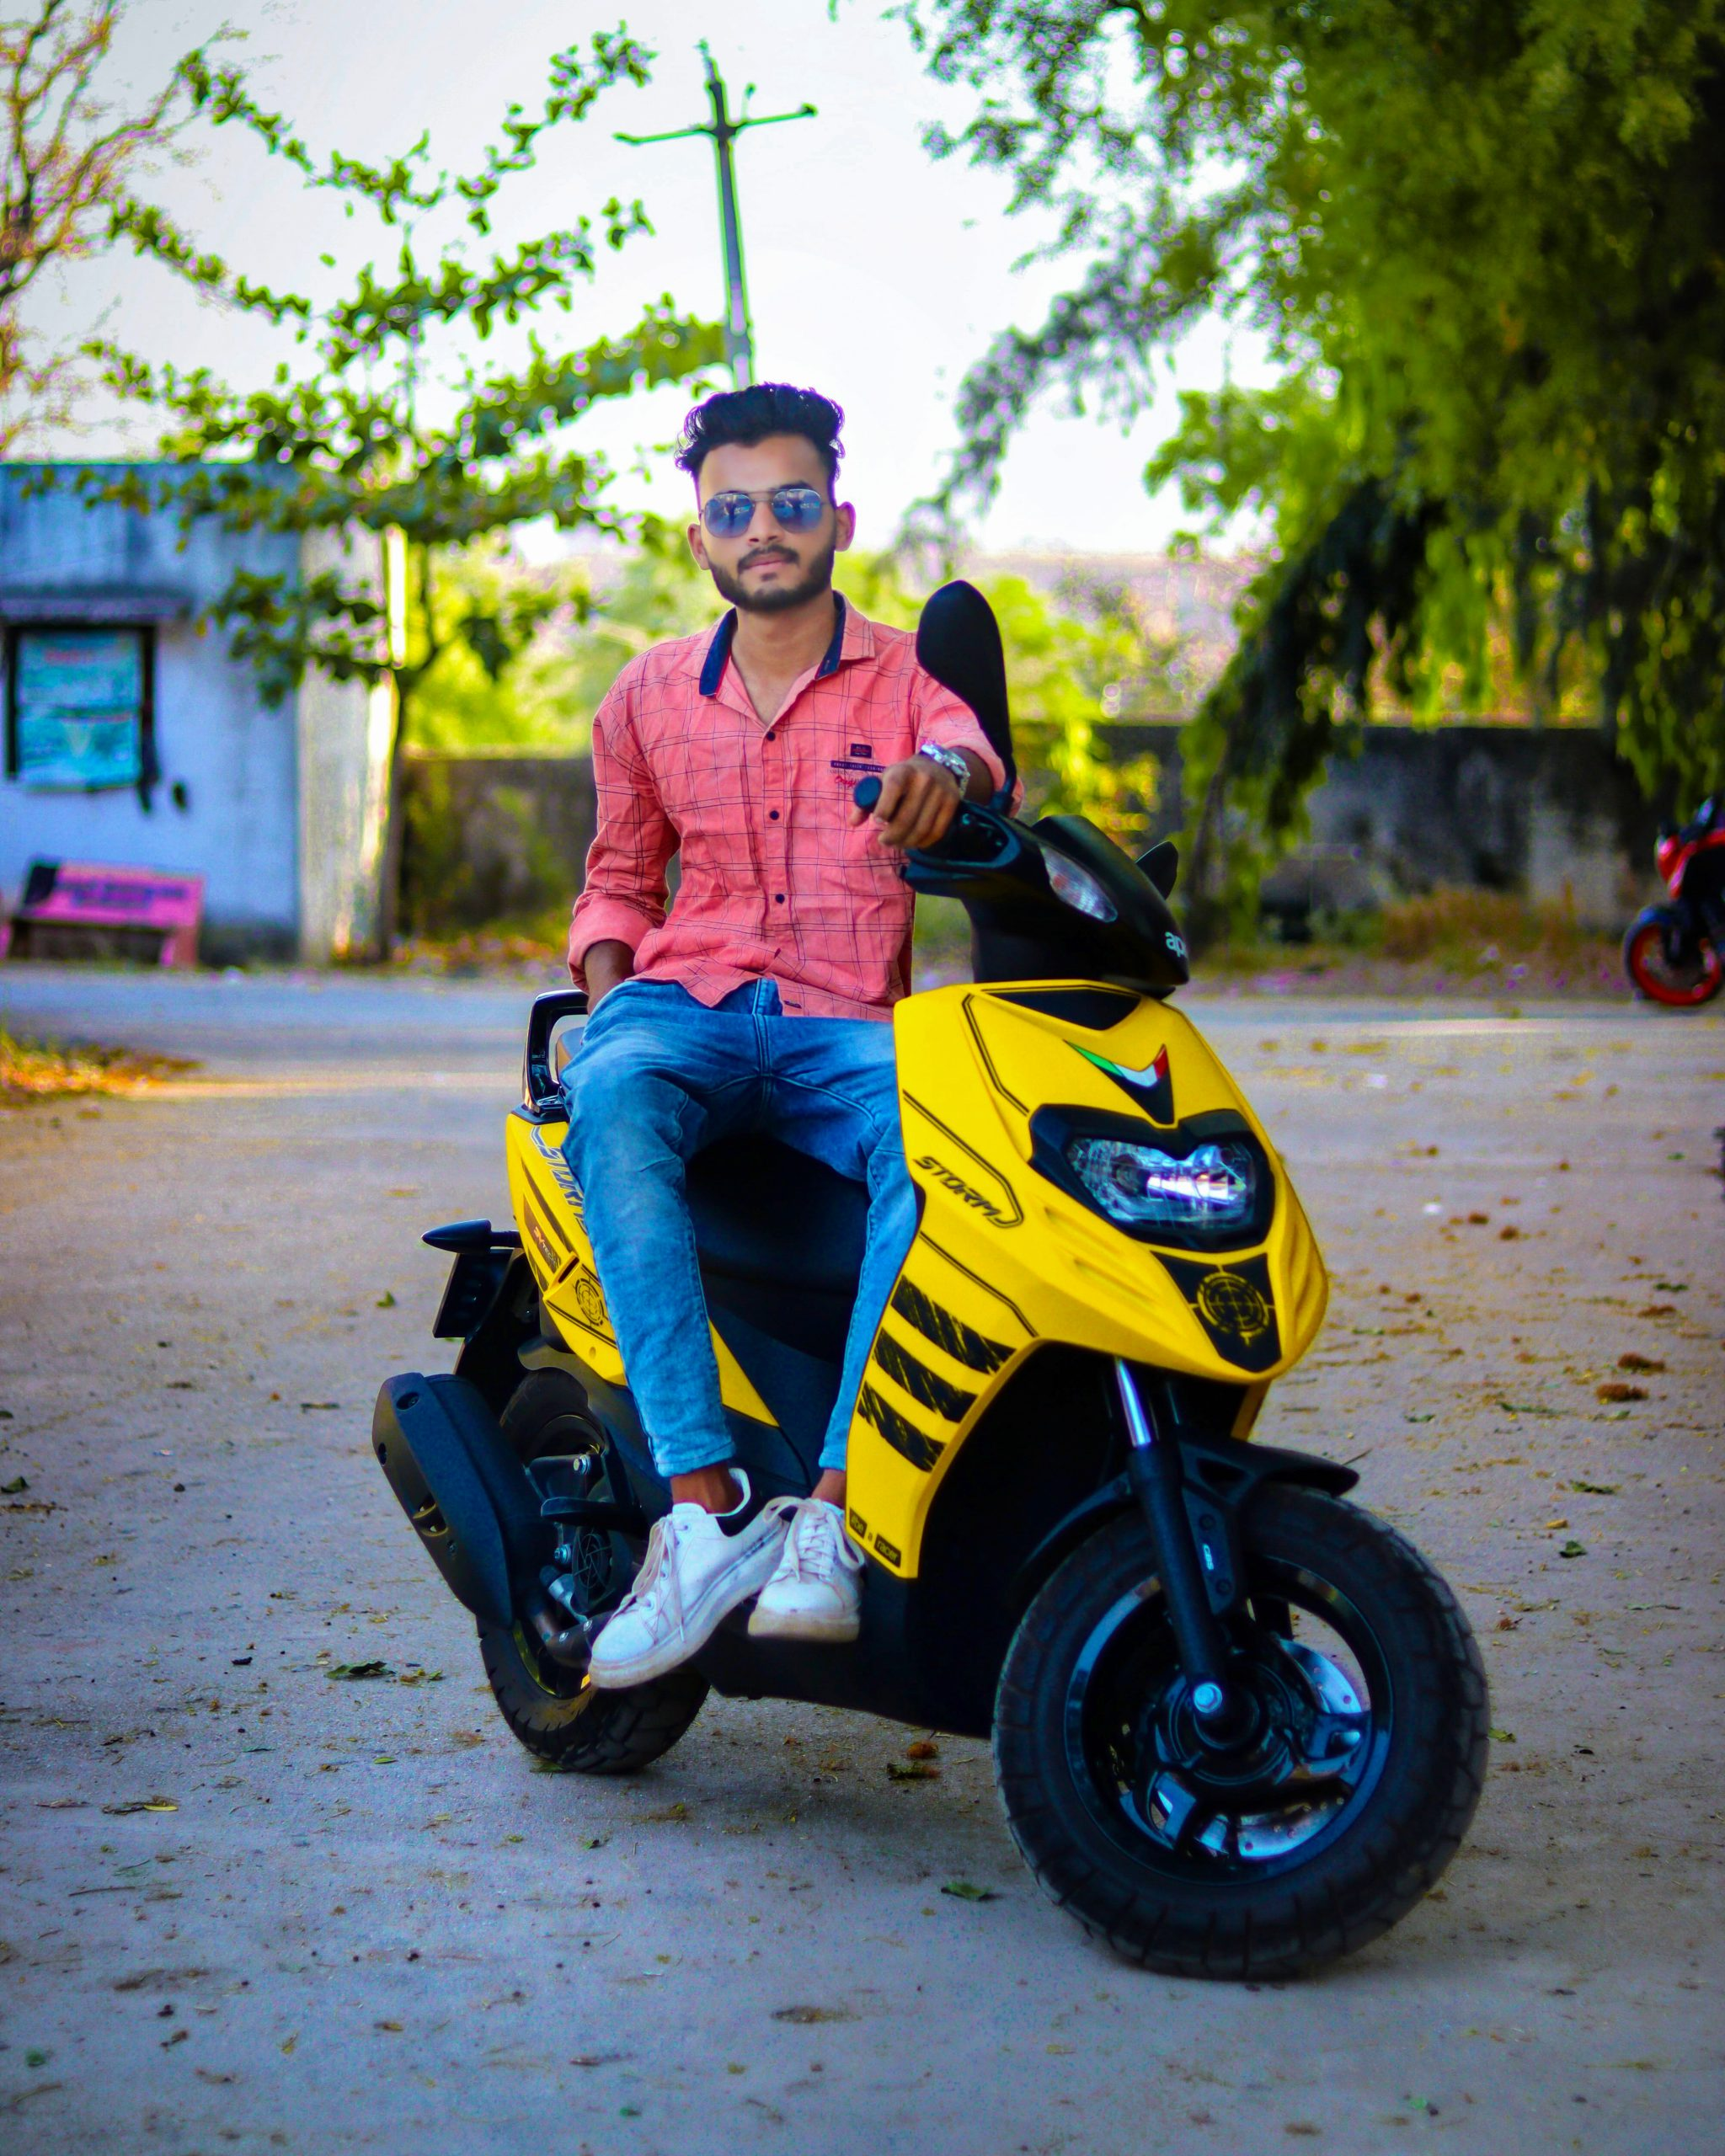 Boy posing on scooty